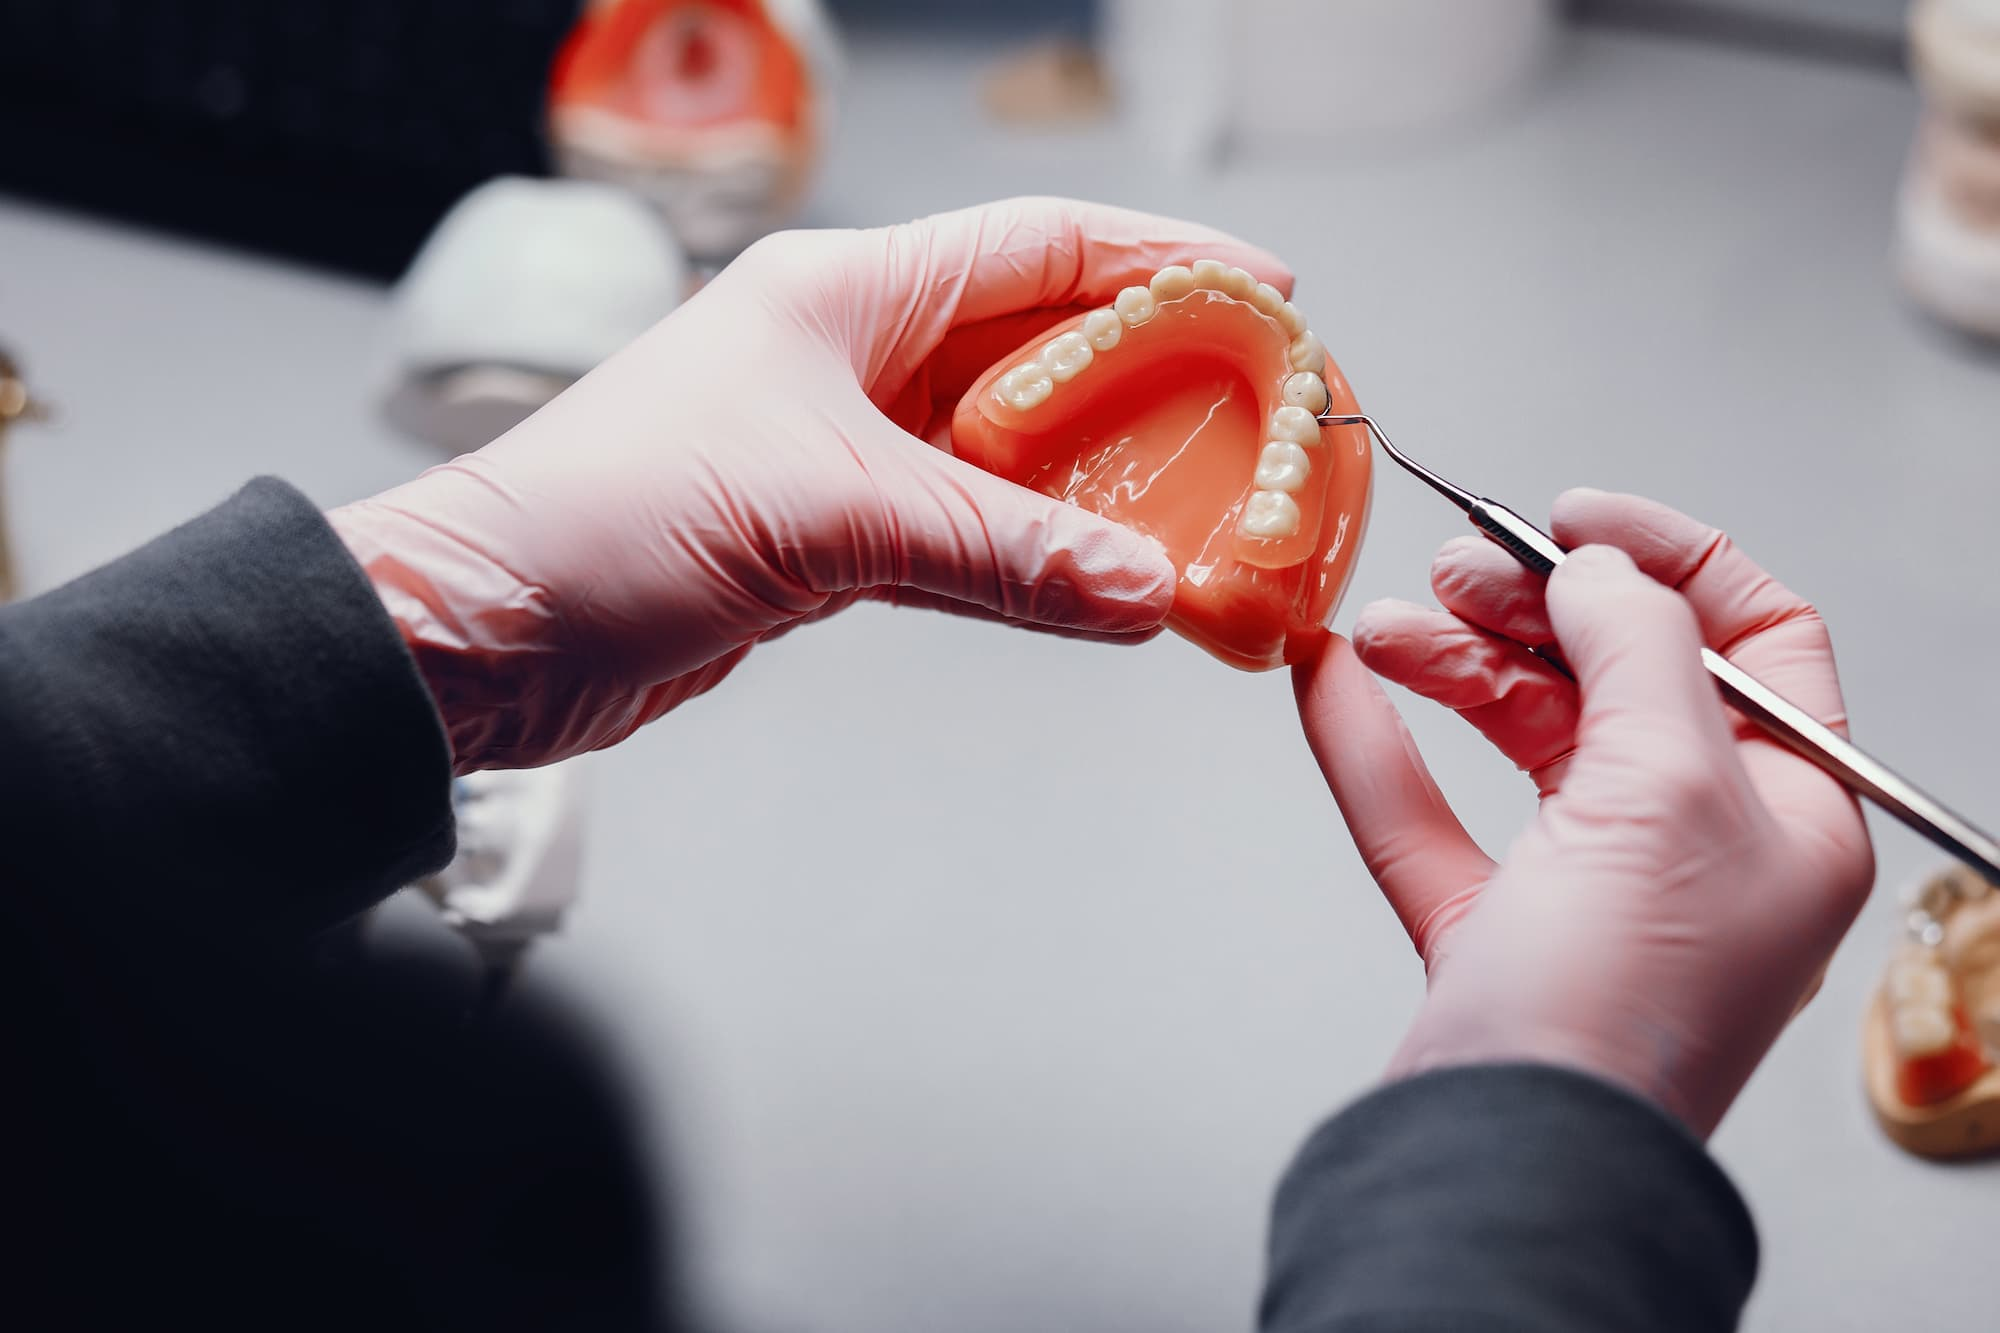 Acrylic denture being repaired by technician